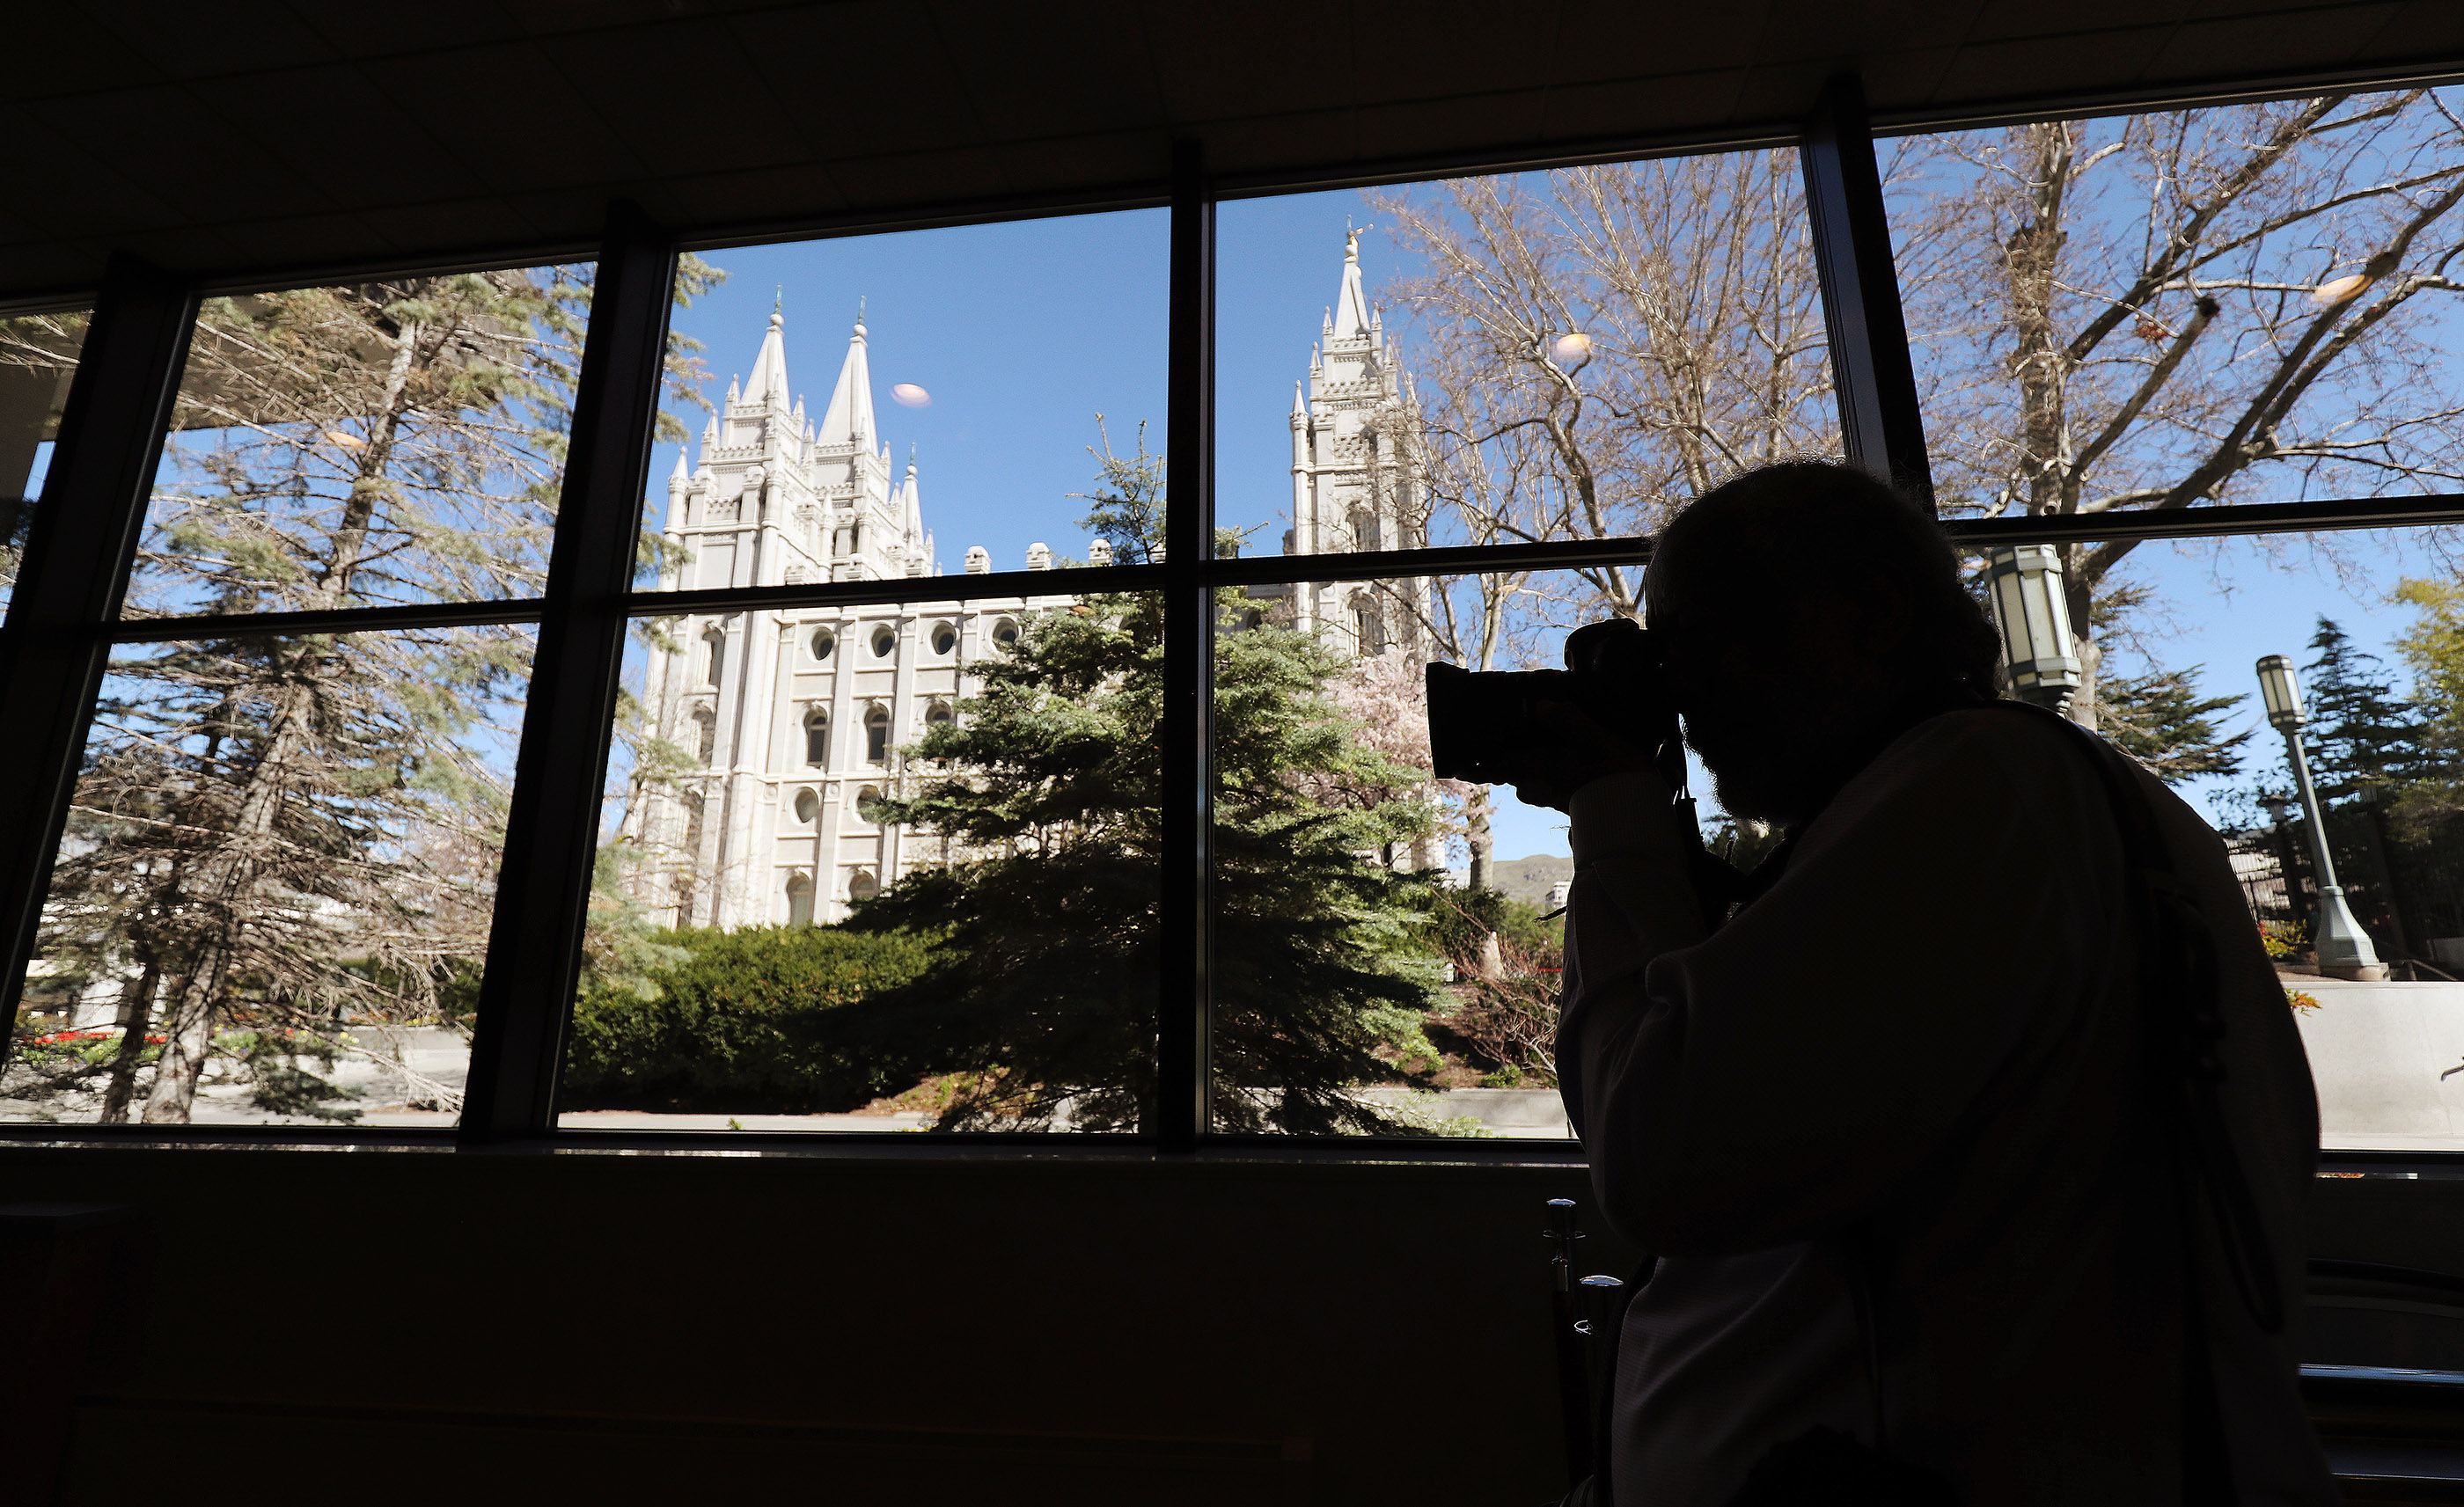 A photographer shoots a photo in the South Visitors' Center on Temple Square in Salt Lake City on Friday, April 19, 2019. Leadership of The Church of Jesus Christ of Latter-day Saints announced renovation plans for the Salt Lake Temple and changes to the temple grounds and Temple Square, including the visitors center.